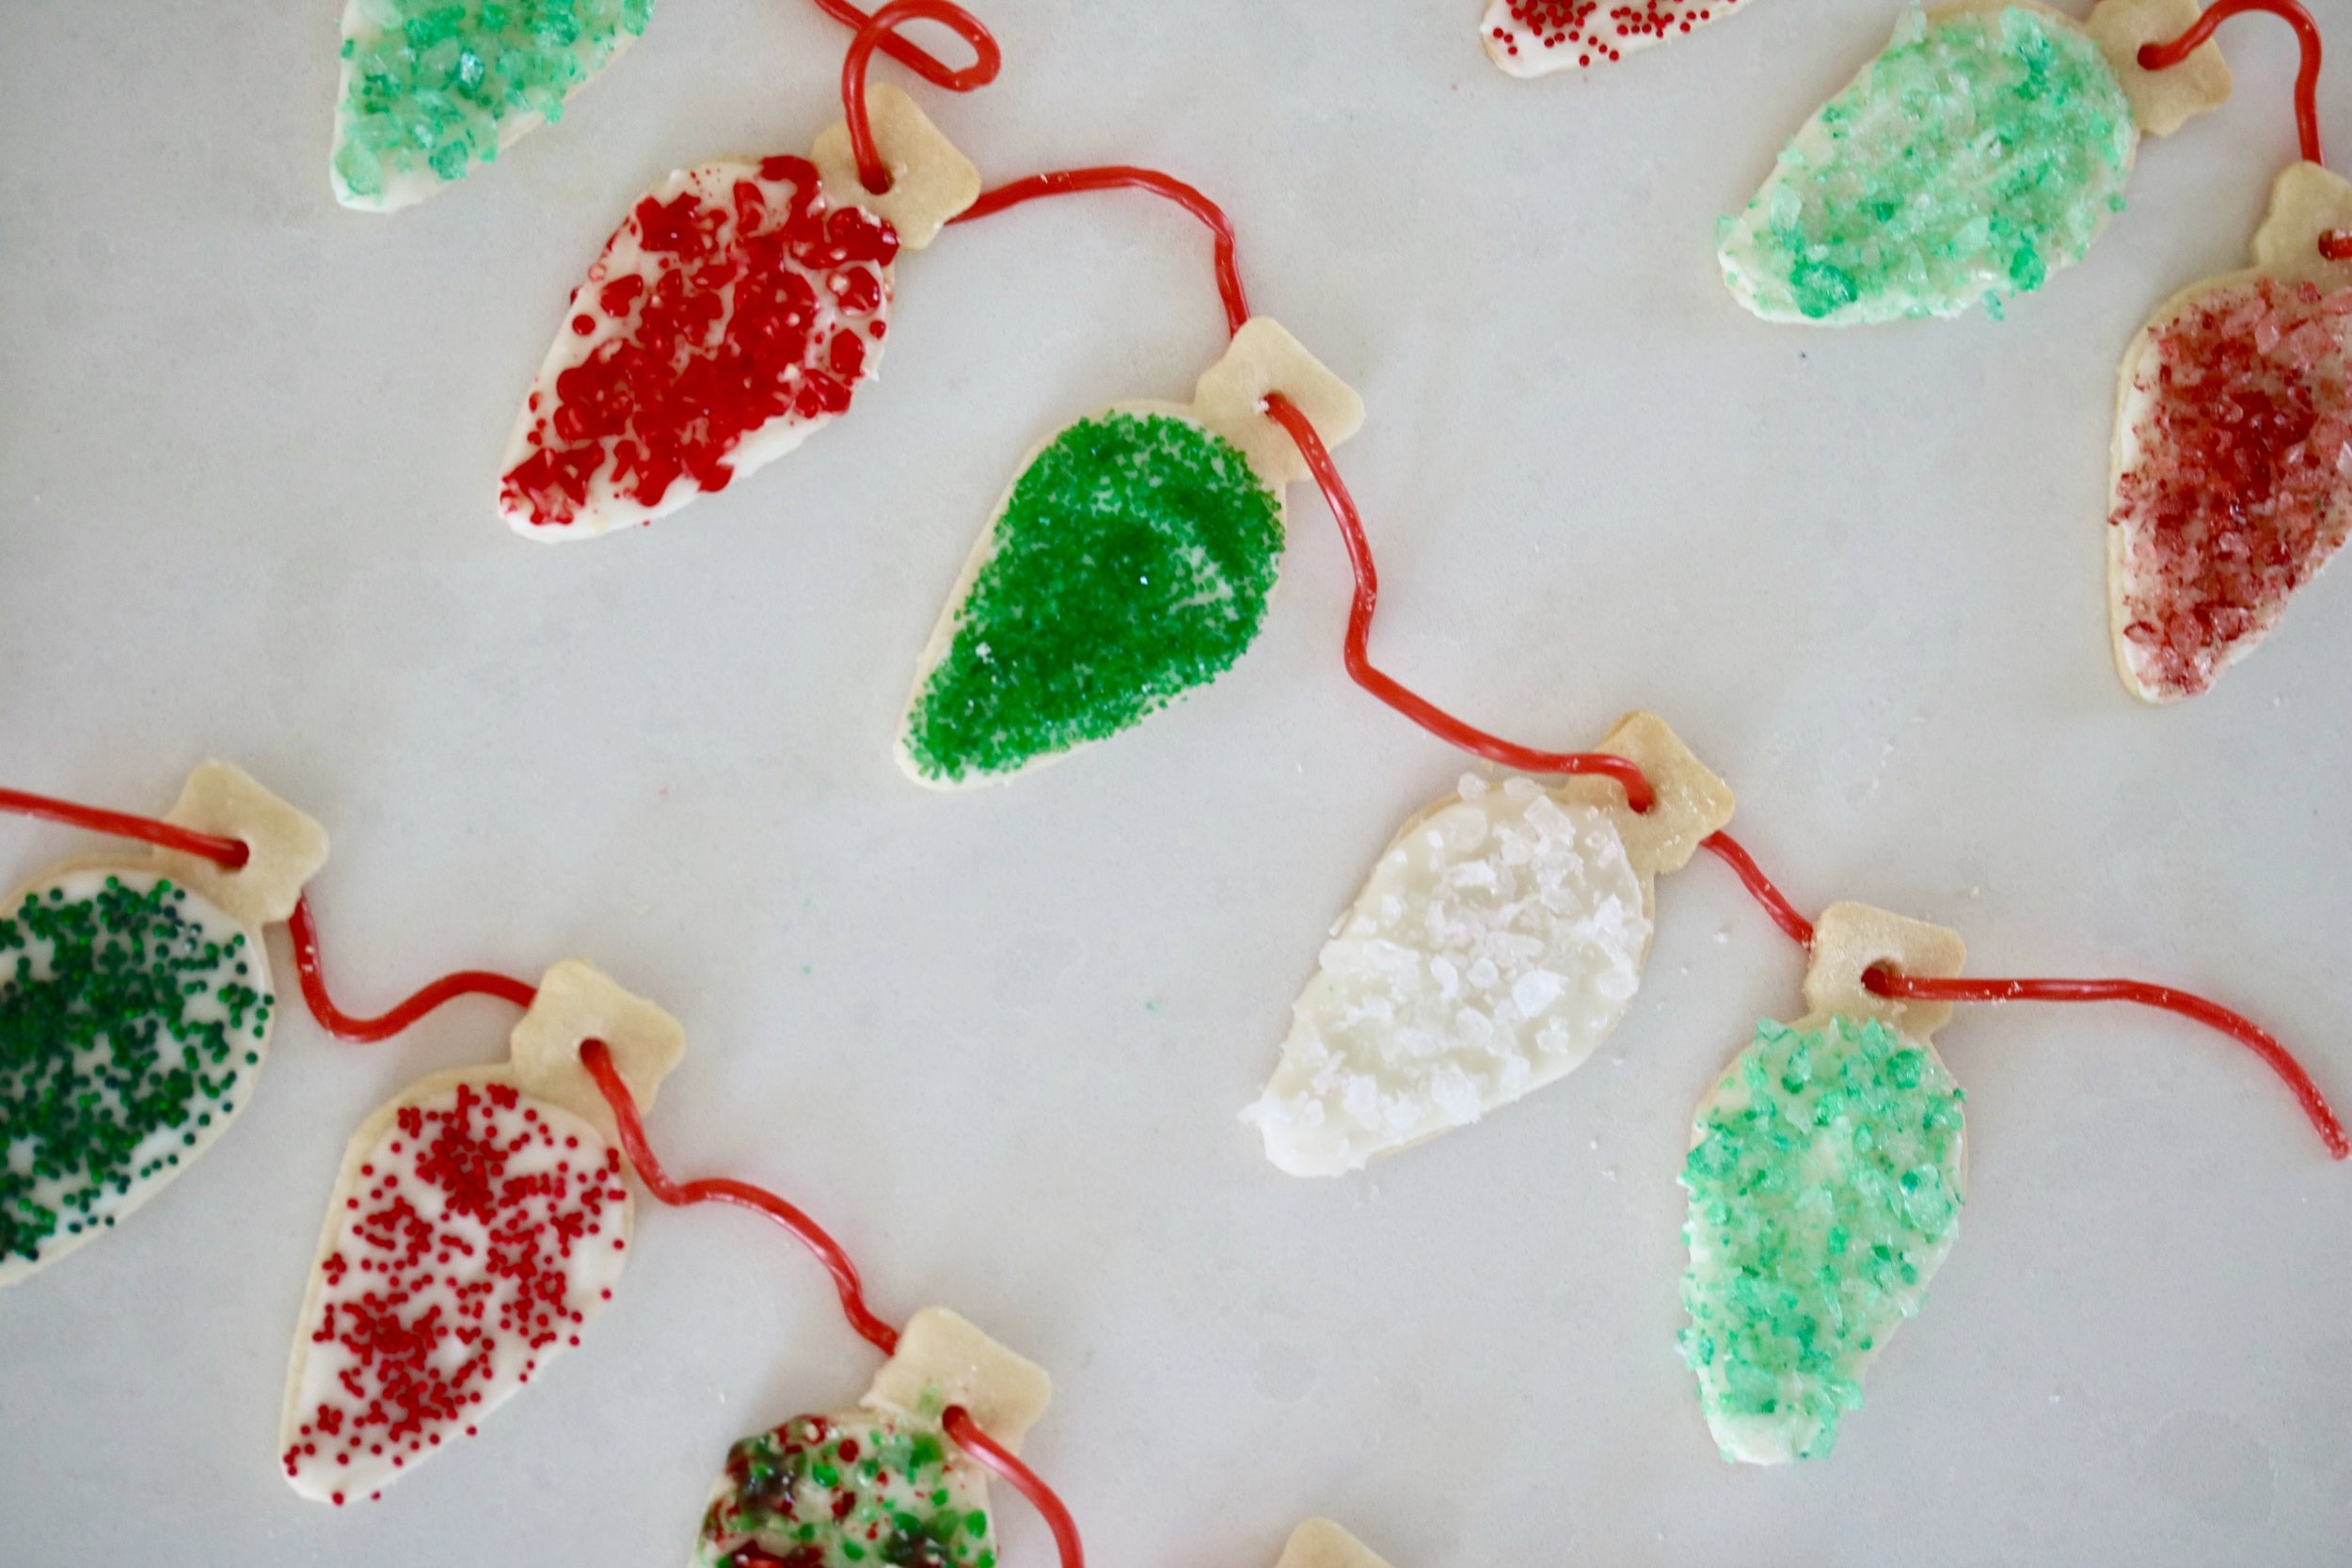 Holiday Lights Sugar Cookies By Brandi Milloy Photo 2.jpg